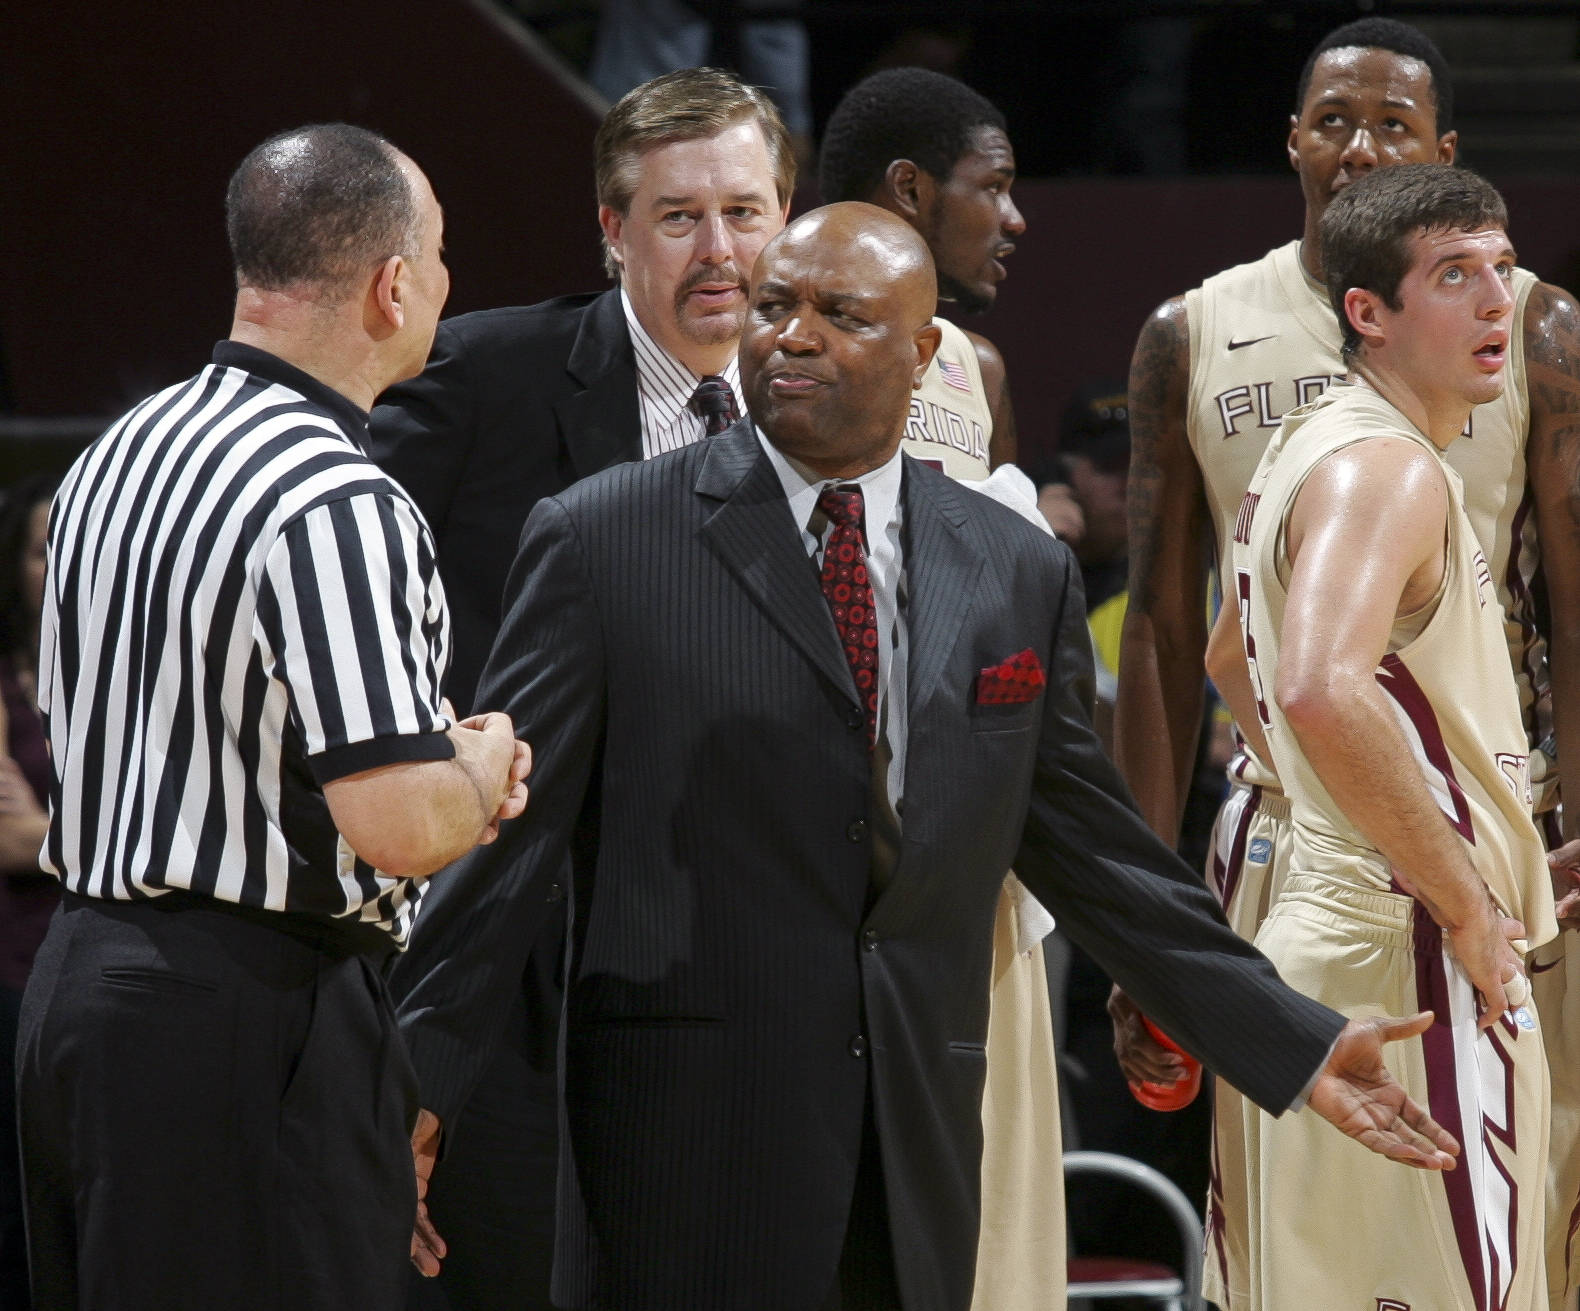 Florida State head coach Leonard Hamilton discusses an intentional foul call on Florida State's Xavier Gibson, right, with a referee during the first half of an NCAA college basketball game against Virginia on Saturday, Feb. 4, 2012, in Tallahassee, Fla. (AP Photo/Phil Sears)